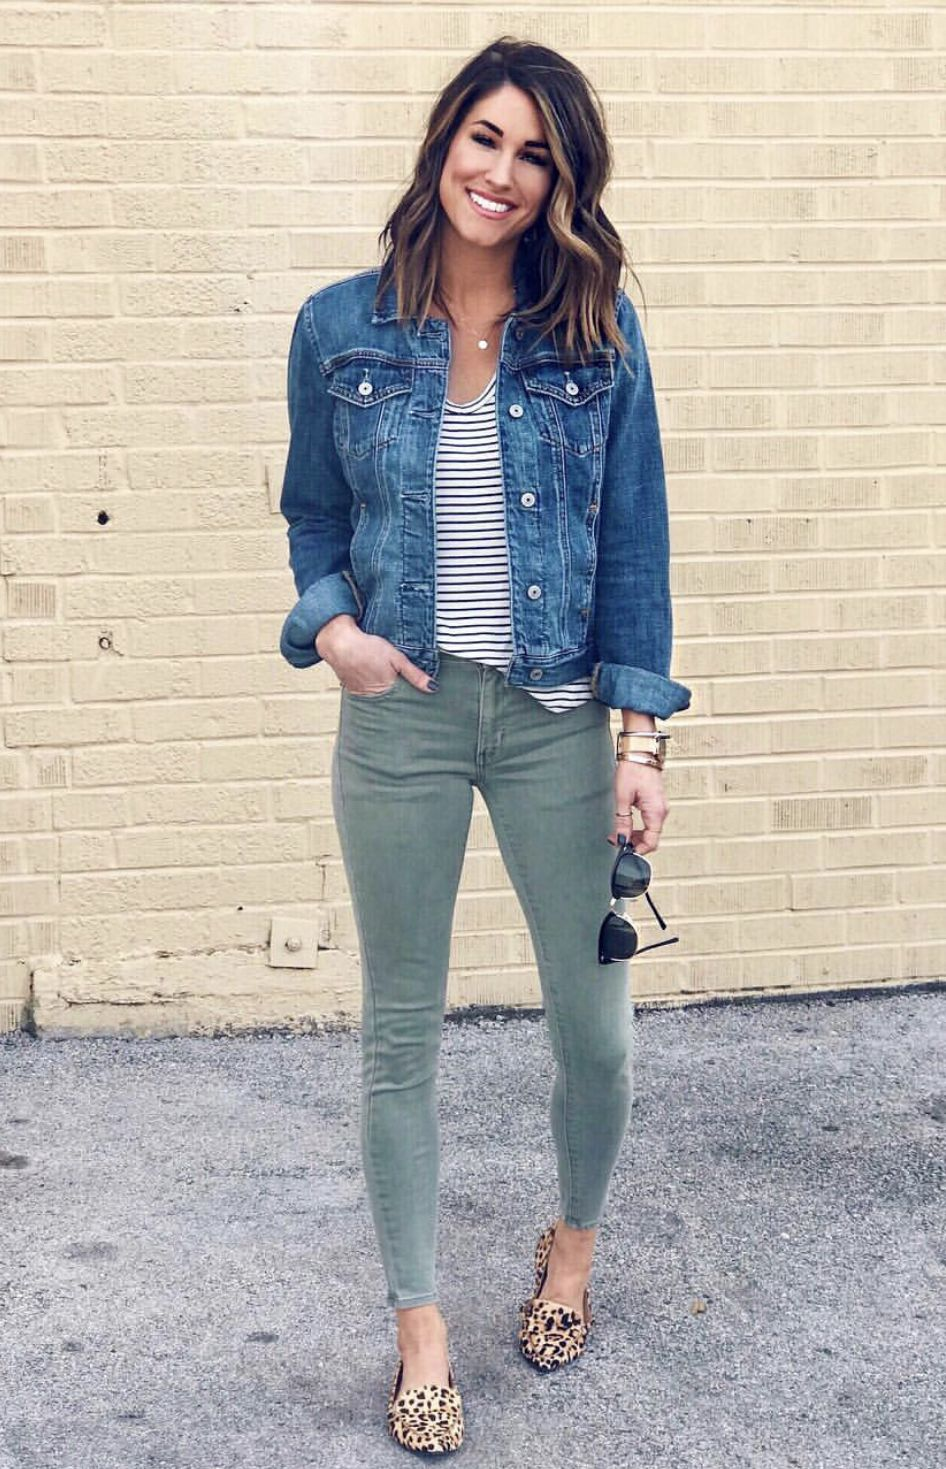 Jean Jackets Go With Everything Popular Spring Outfits Clothes Casual Outfits [ 1469 x 946 Pixel ]